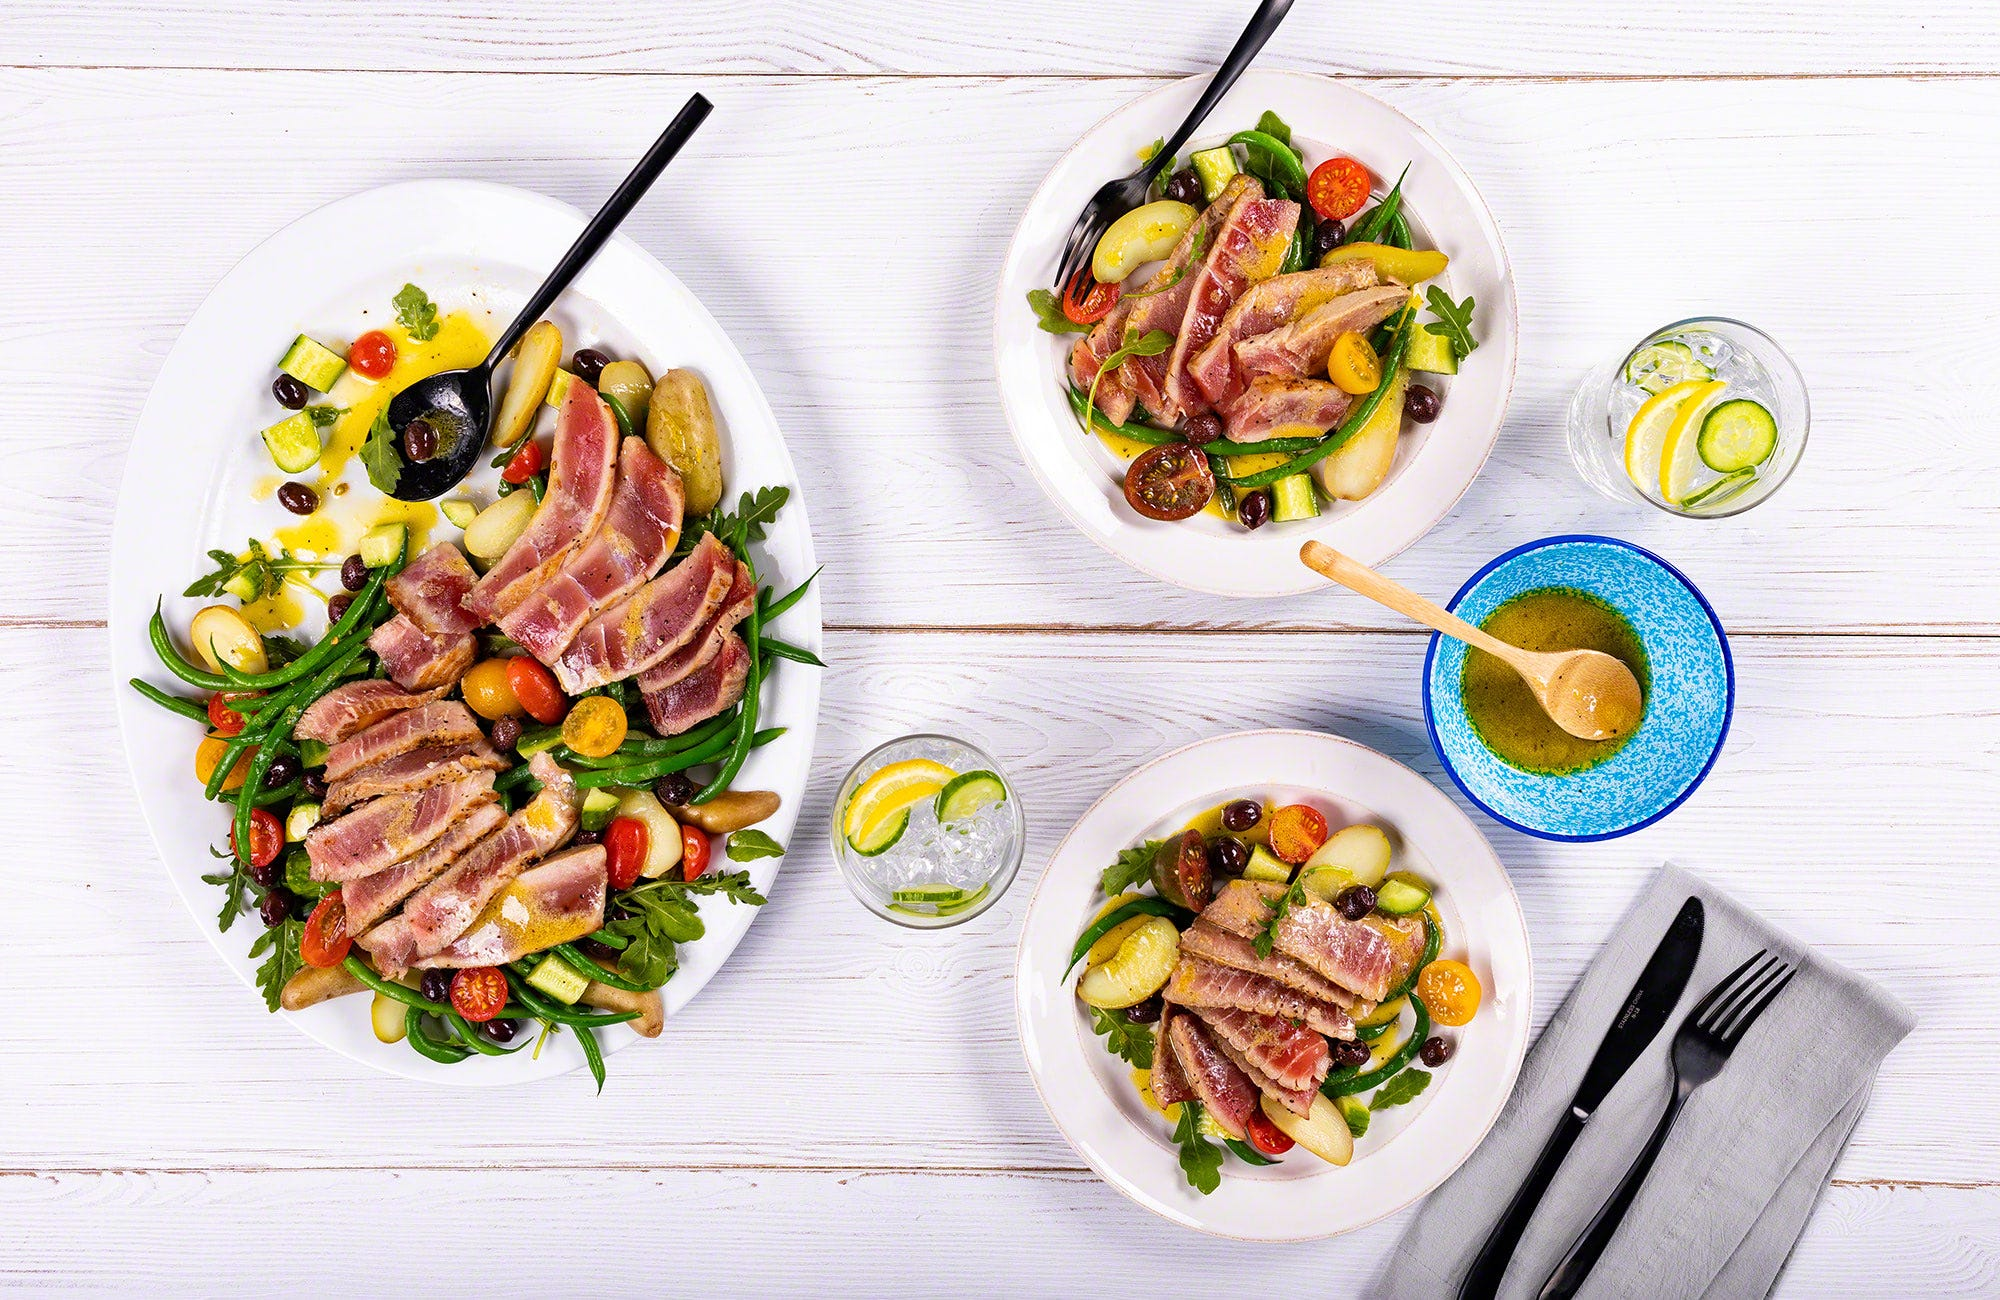 Seared Tuna Steak Salad Niçoise with Lemon Dijon Mustard Vinaigrette